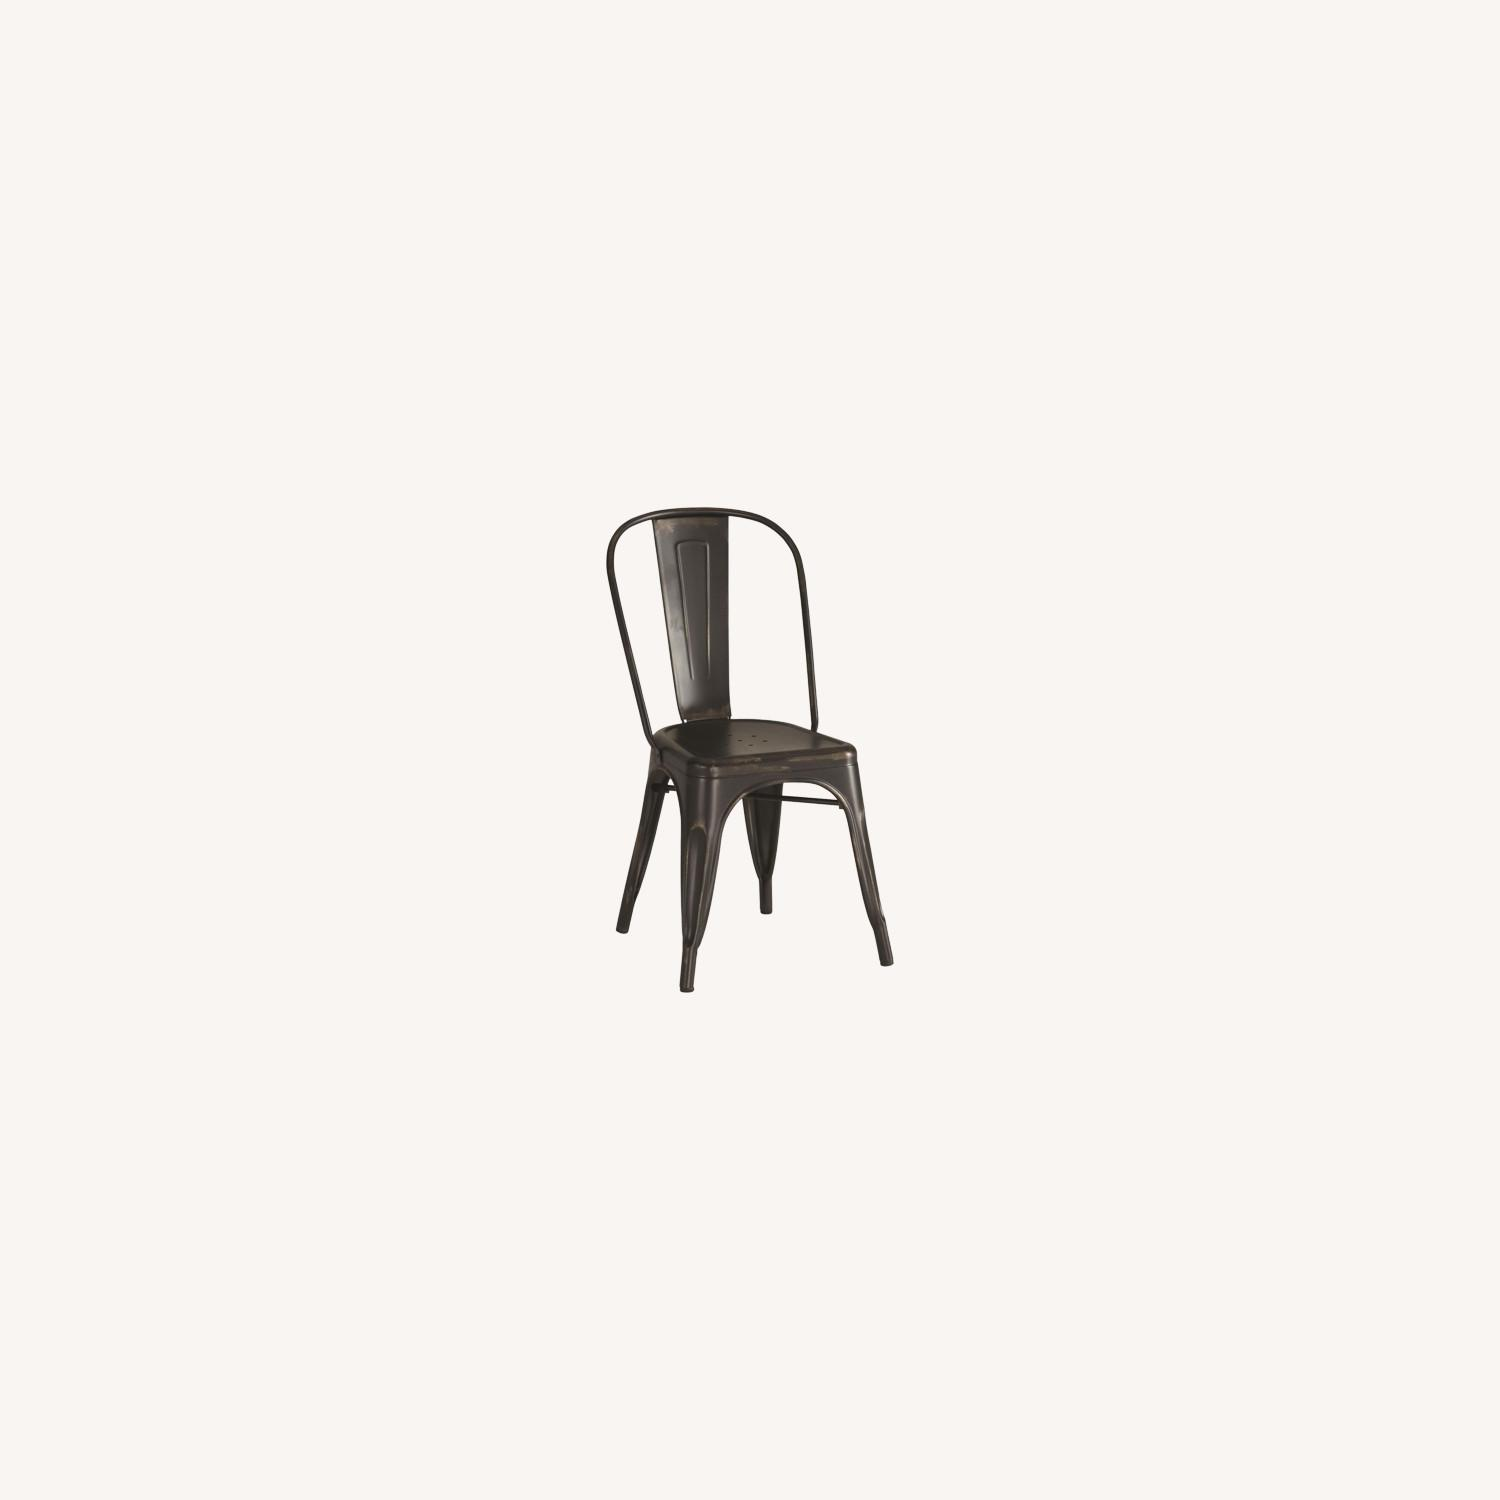 Charming Dining Chair In Black Metal - image-4